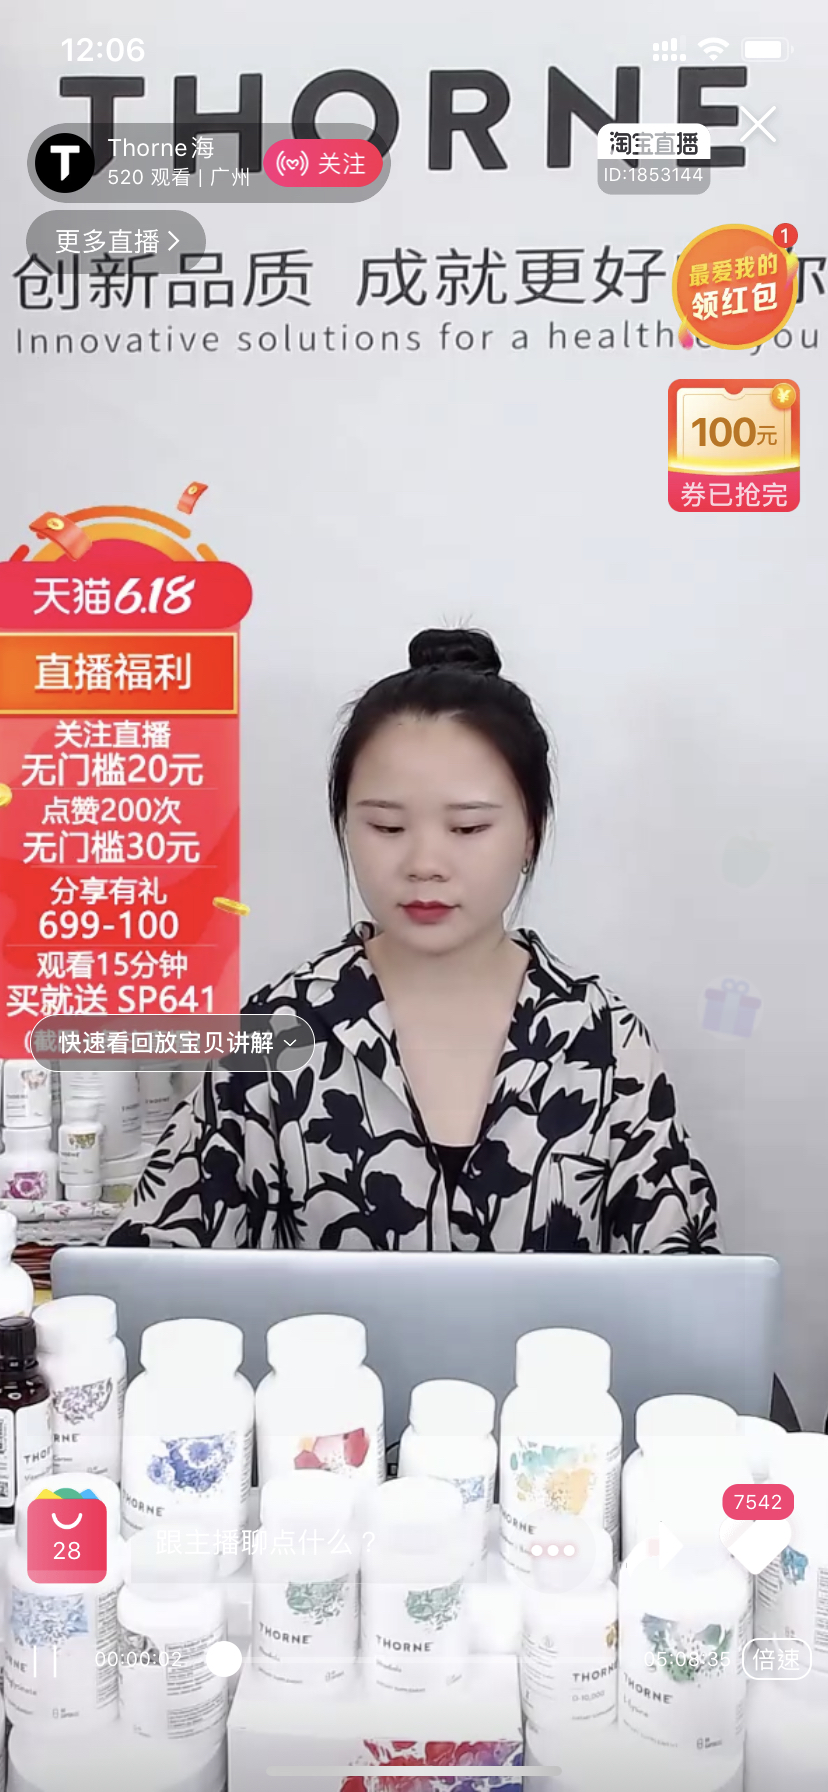 Thorne Livestreaming in China Pattern Blog